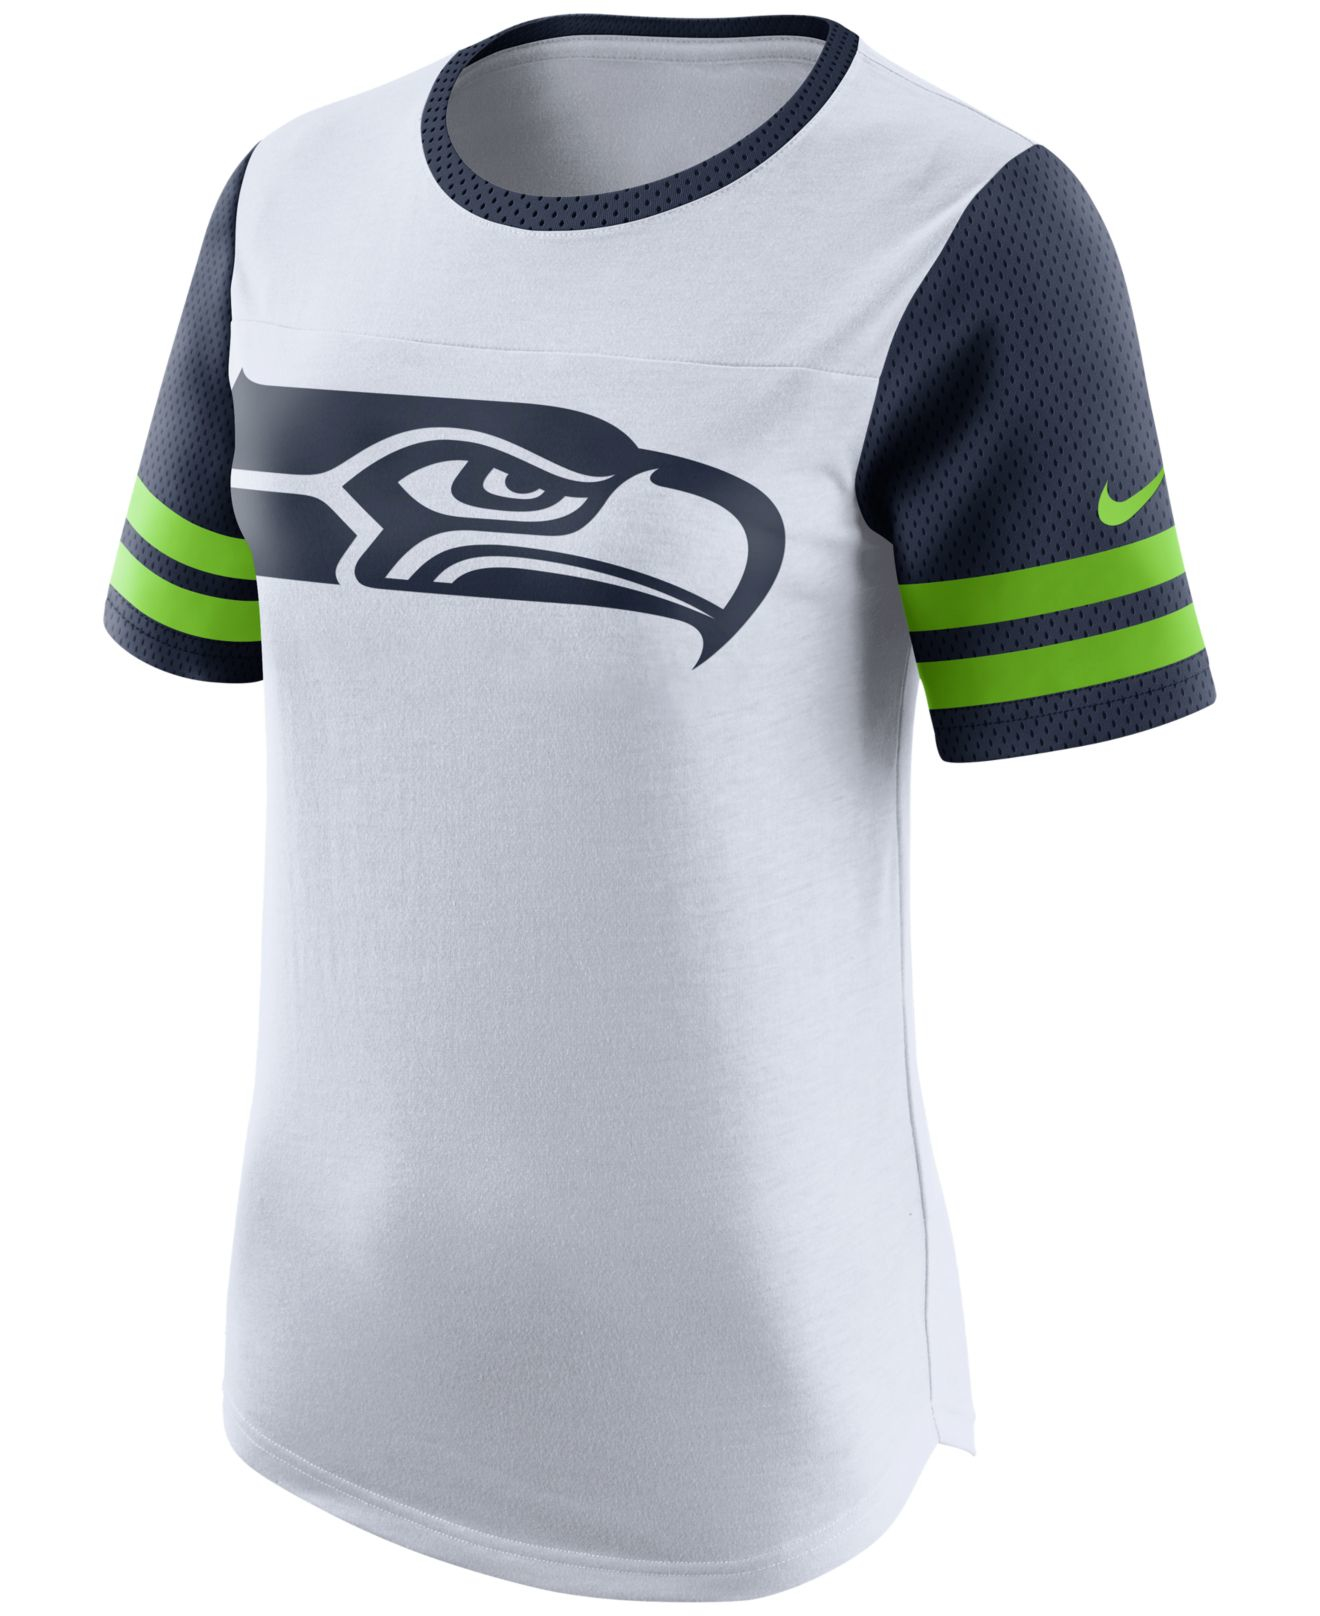 Support the Swoosh with Seattle Seahawks Nike apparel and gear at wheelpokemon7nk.cf Display your spirit with officially licensed Seattle Seahawks Nike jerseys, shirts, .